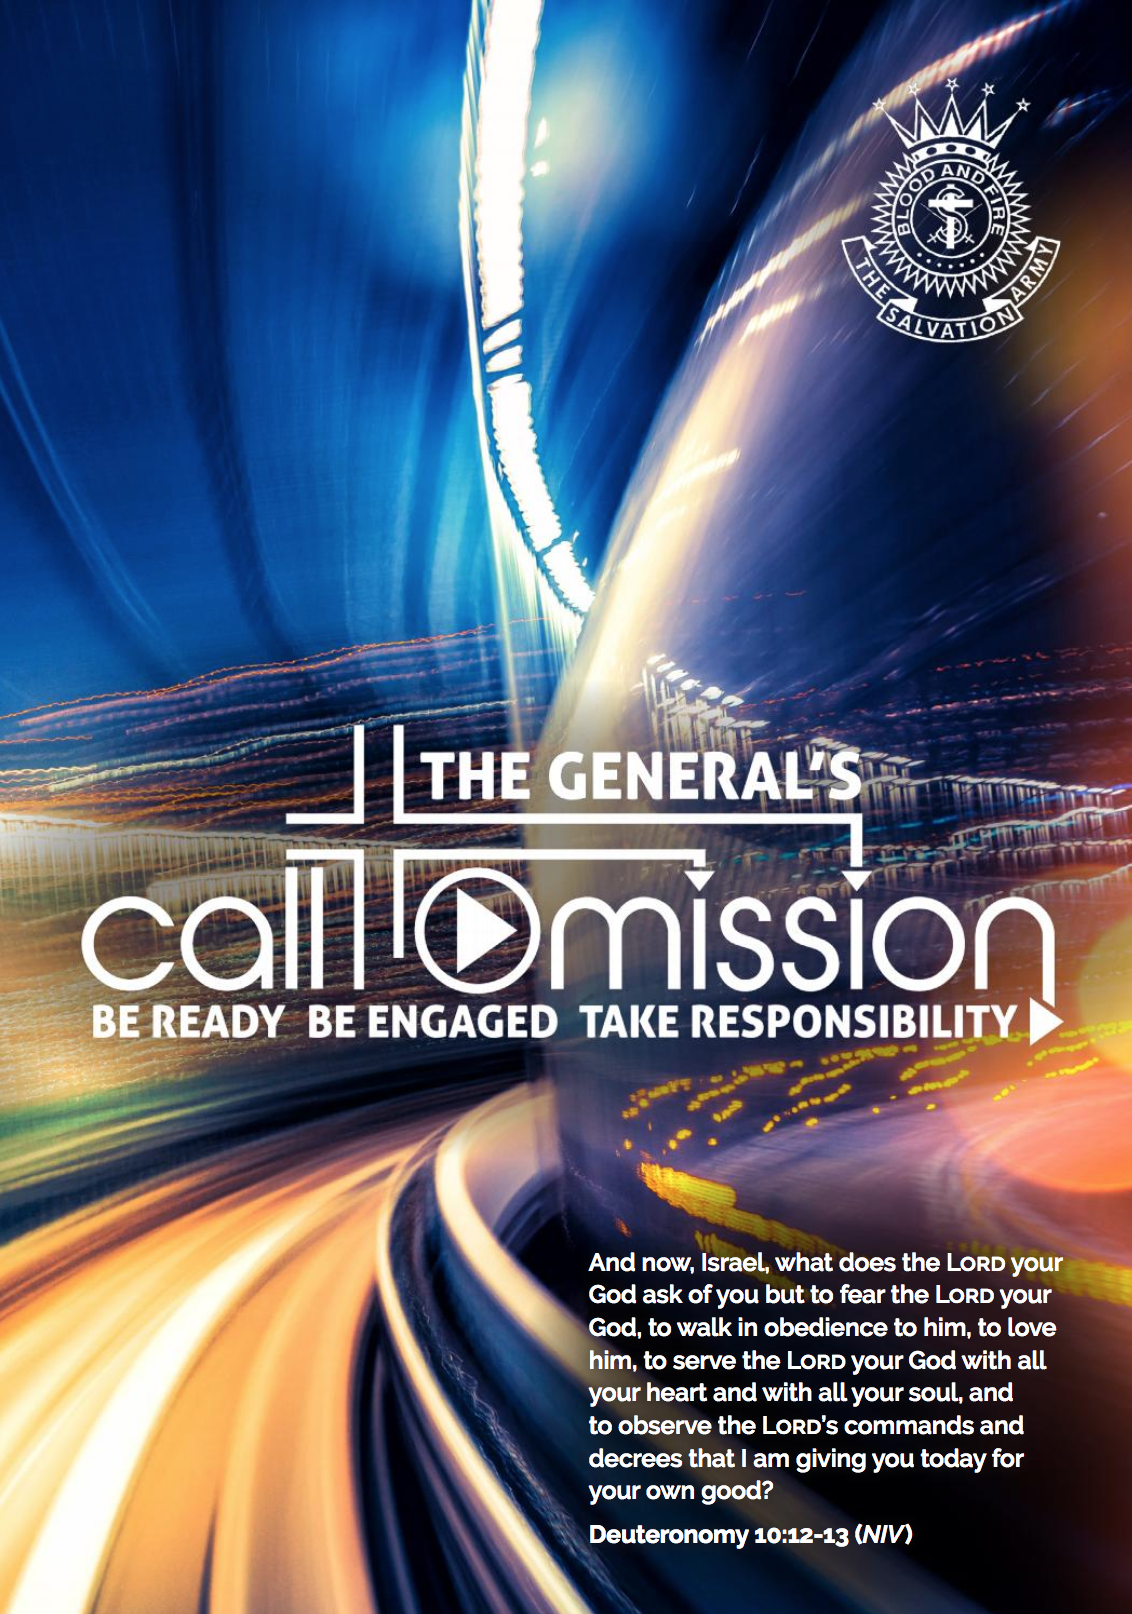 Call to Mission